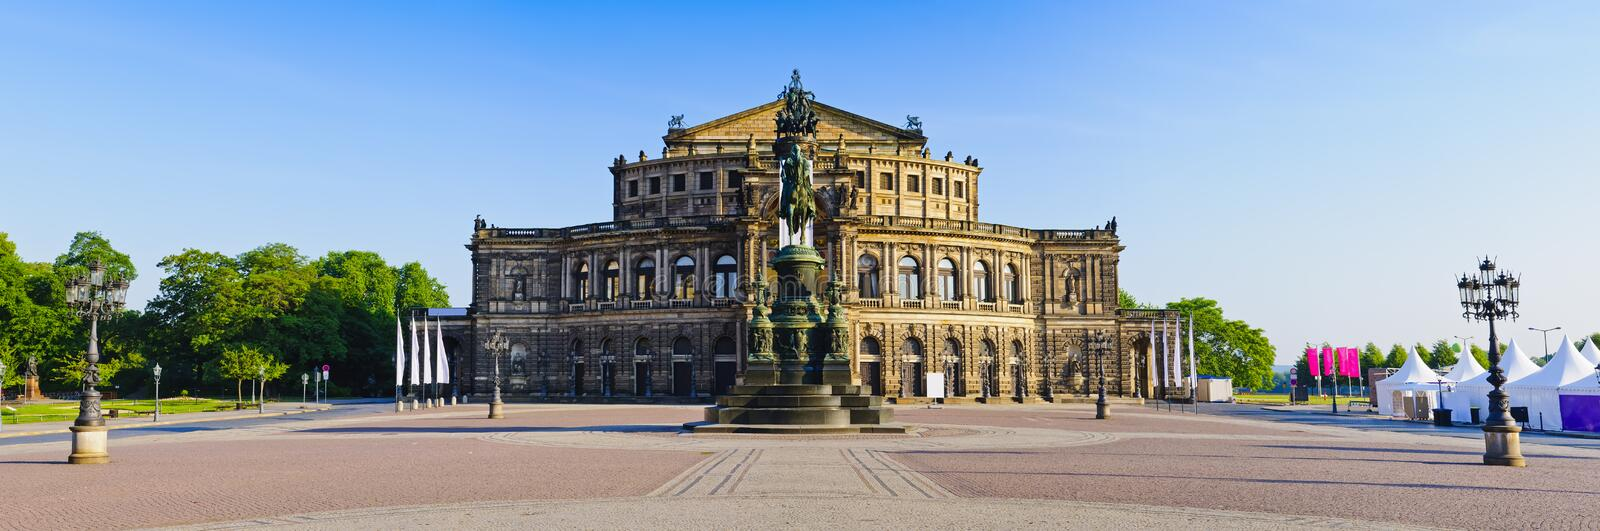 dresden semperoper Germany obrazy royalty free